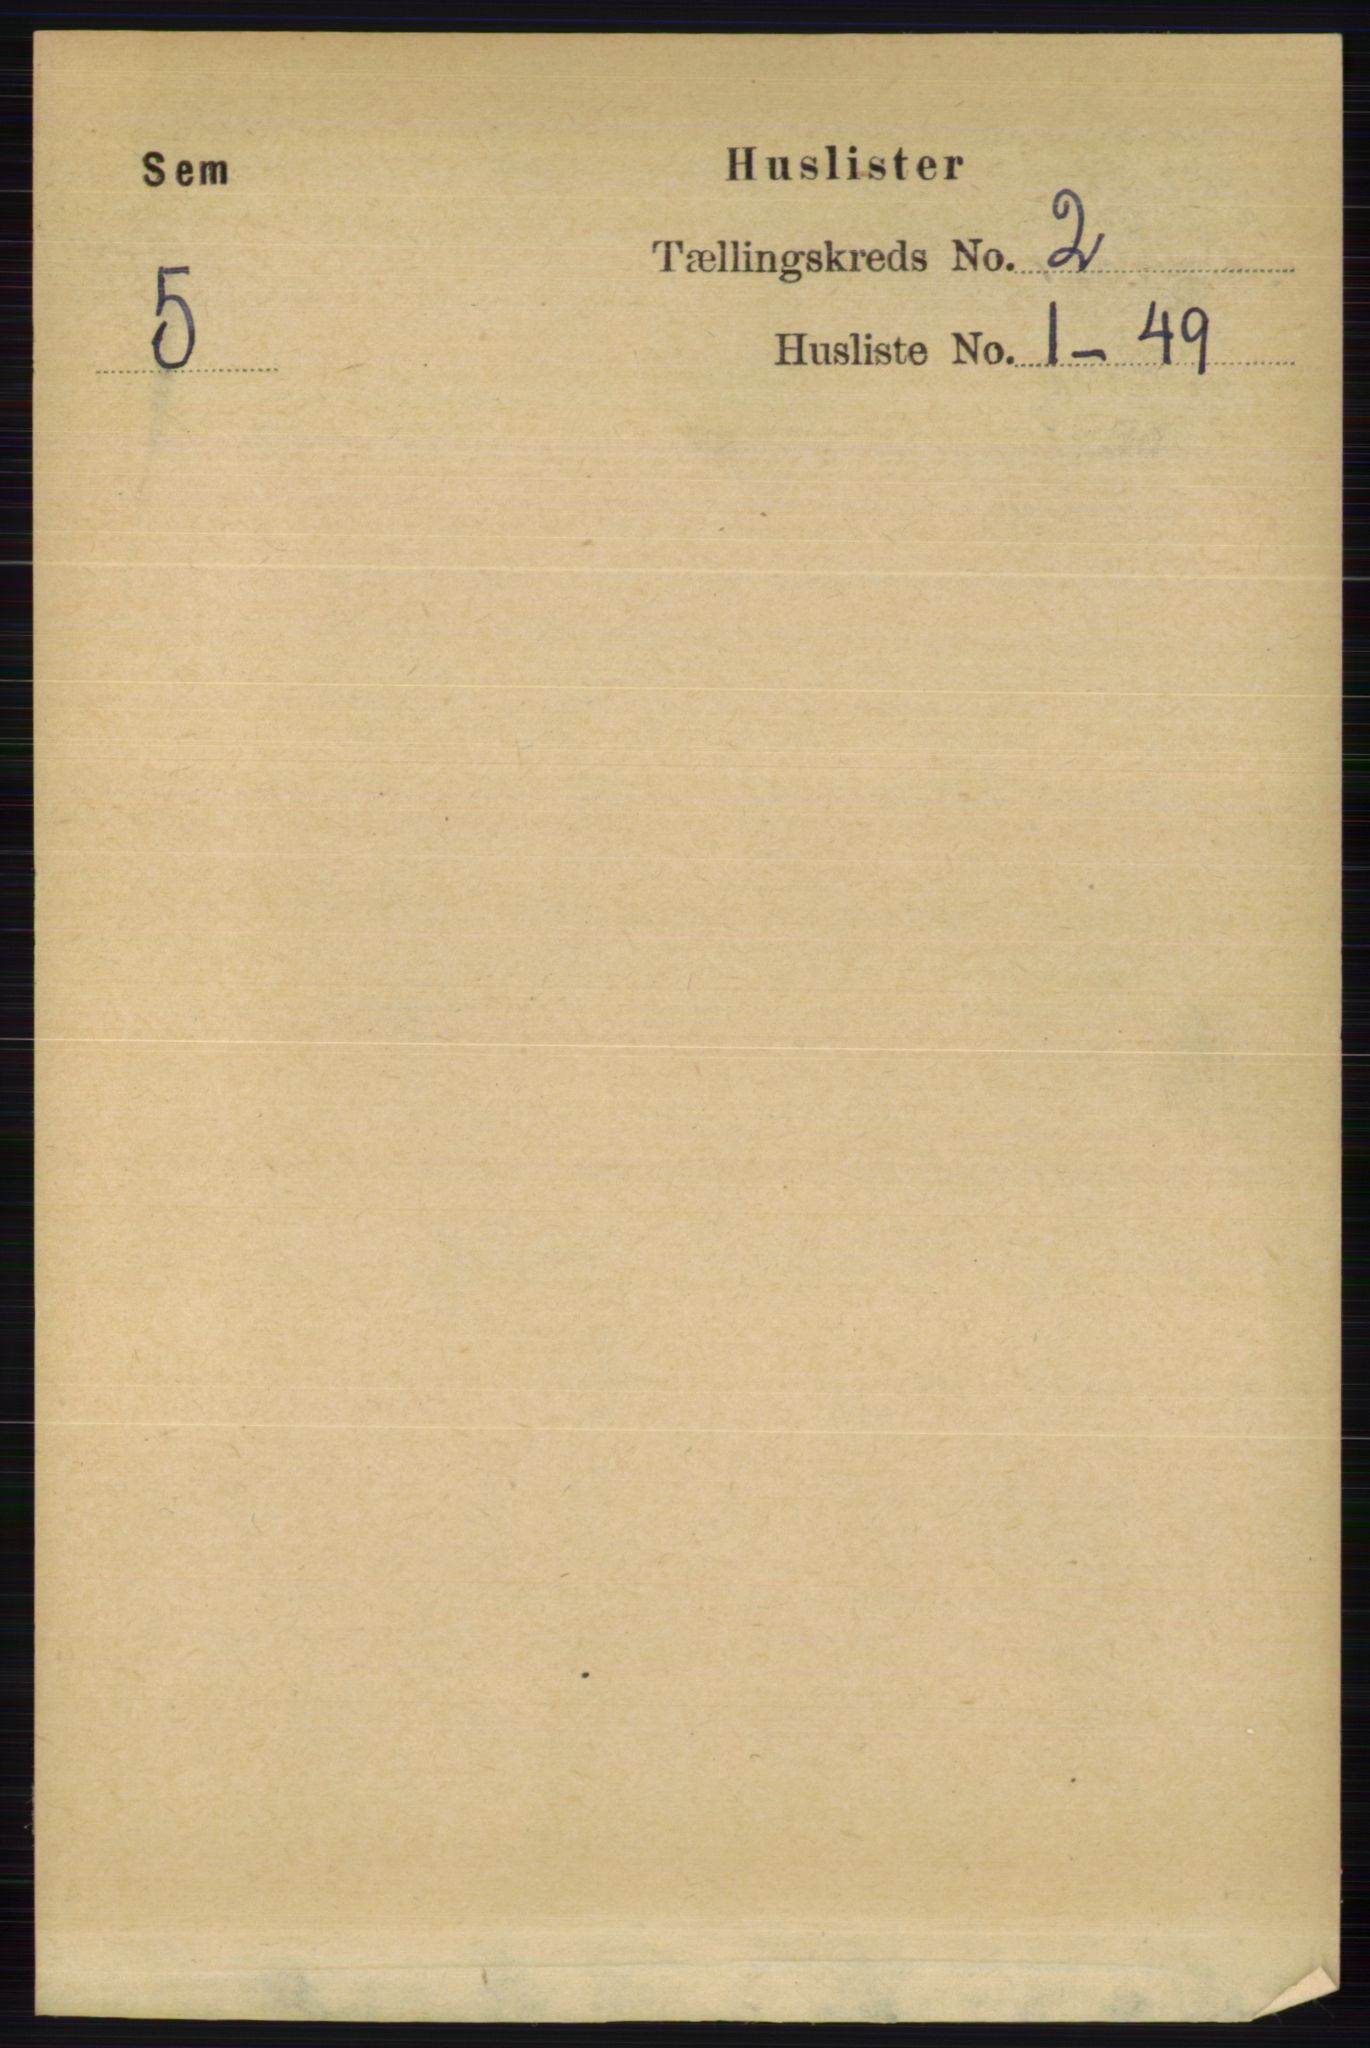 RA, Folketelling 1891 for 0721 Sem herred, 1891, s. 587